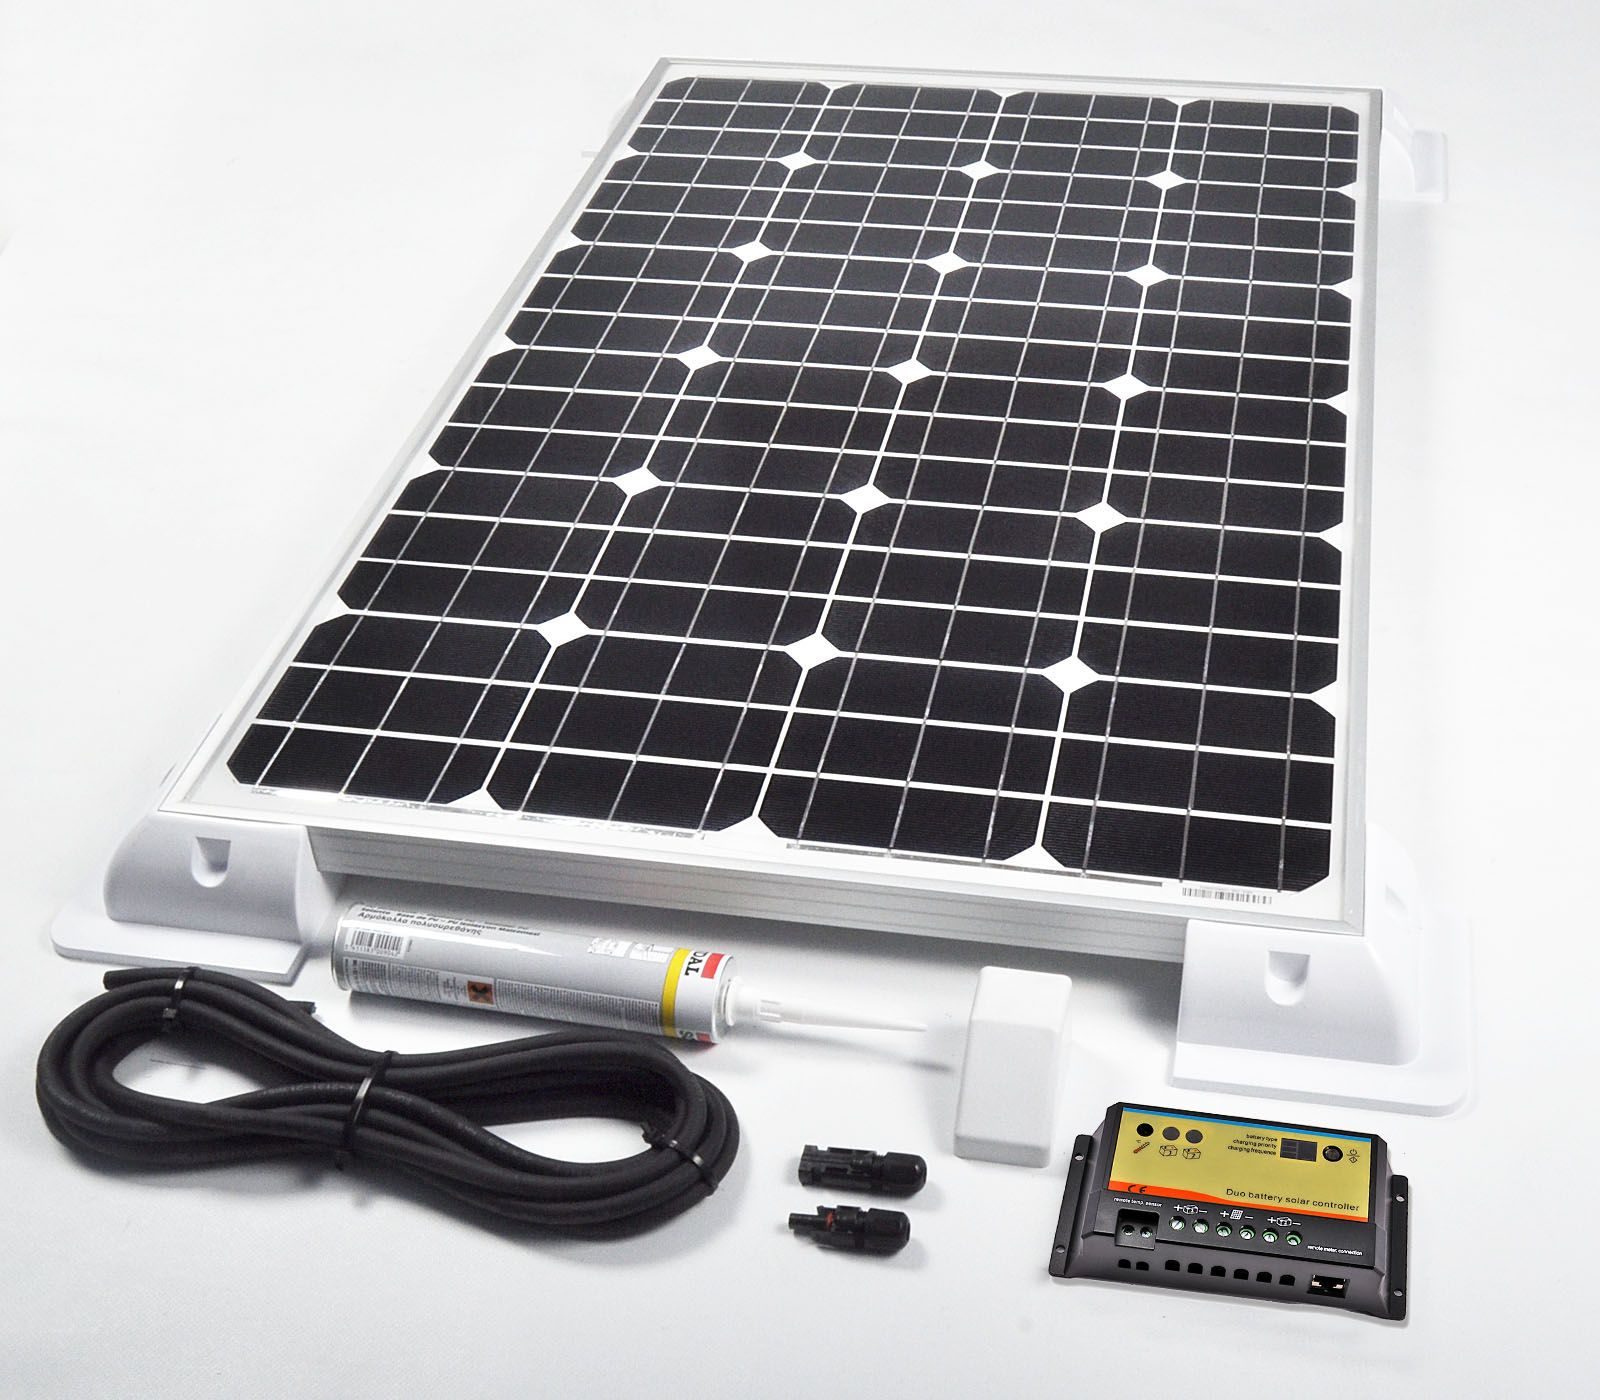 Leisure battery solar charger the best charger 2018 leisure battery wiring diagram how to keep your leisure battery charged advice practical motorhome asfbconference2016 Choice Image